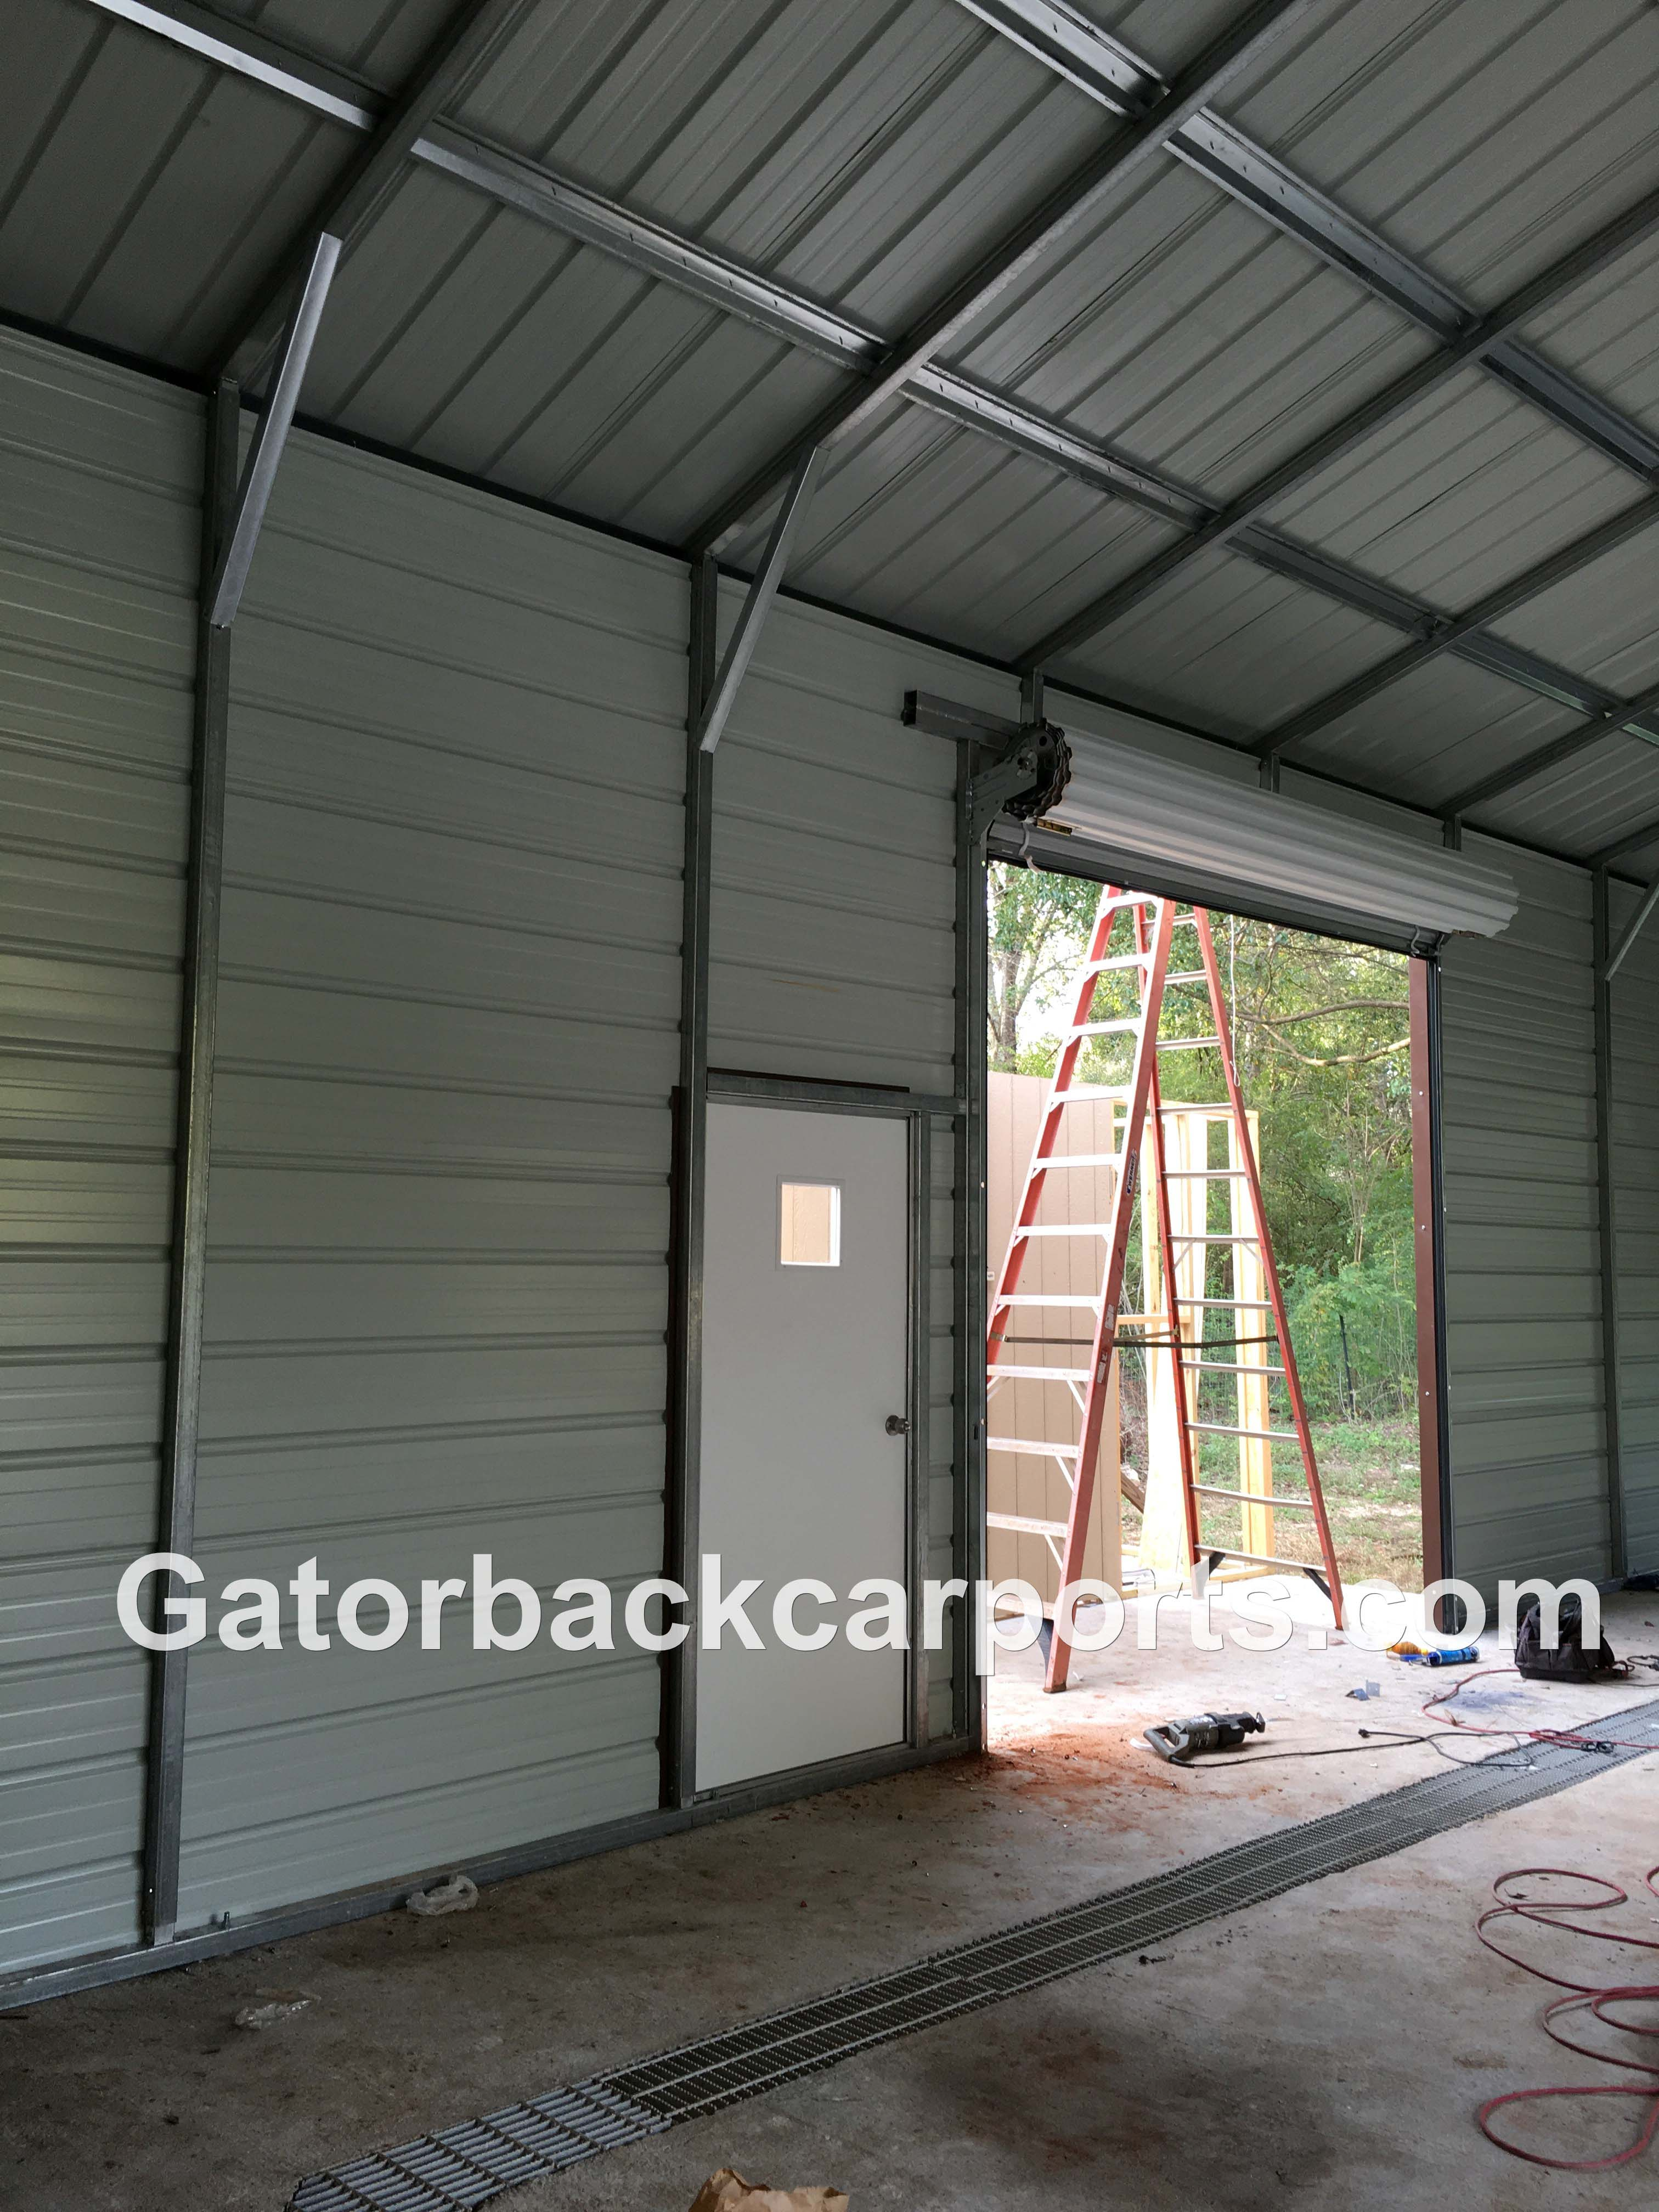 Look inside a steel garage job gatorback carports for Garage side entry door